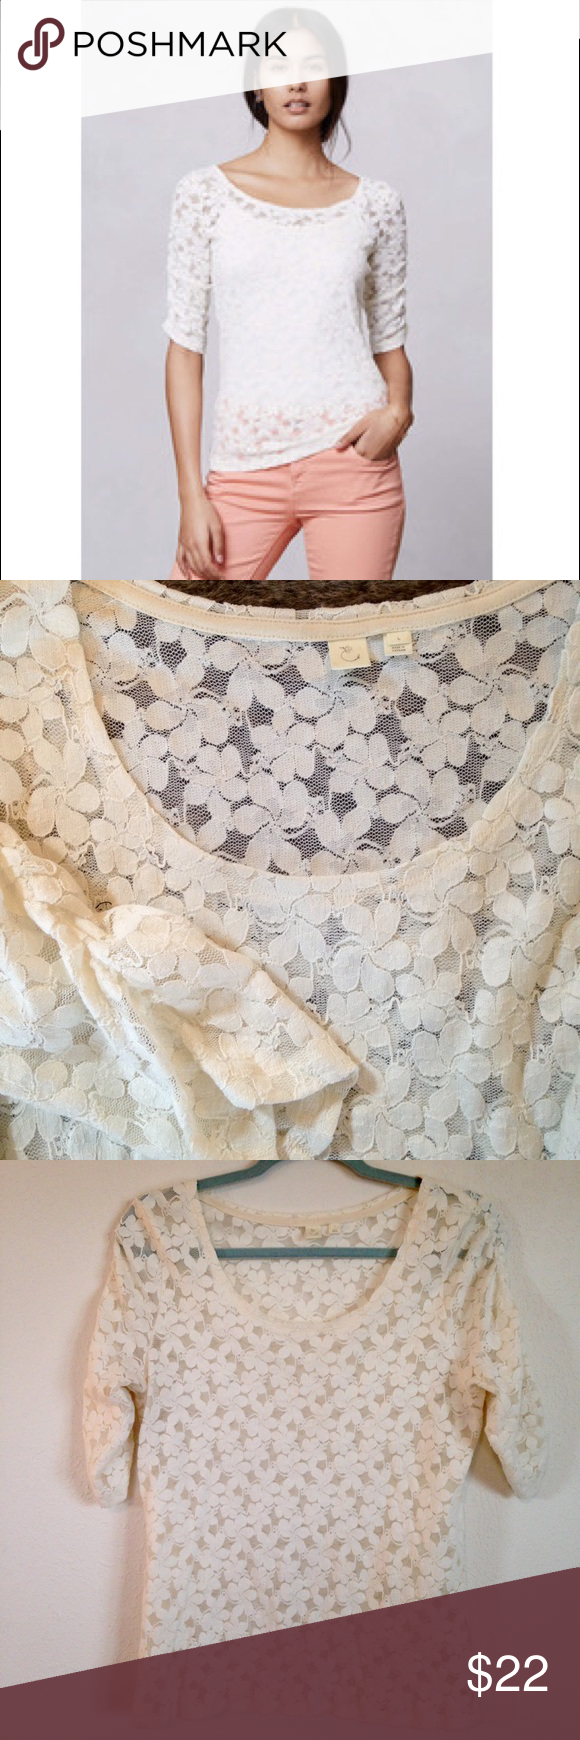 Anthropologie Eloise Brushed Lace Pullover Top So pretty! Ivory brushed lace Anthro top with shirred half sleeves. Size L. Note: very sheer (see close-up). Model is wearing a cami under, but that's your call😉 Anthropologie Tops